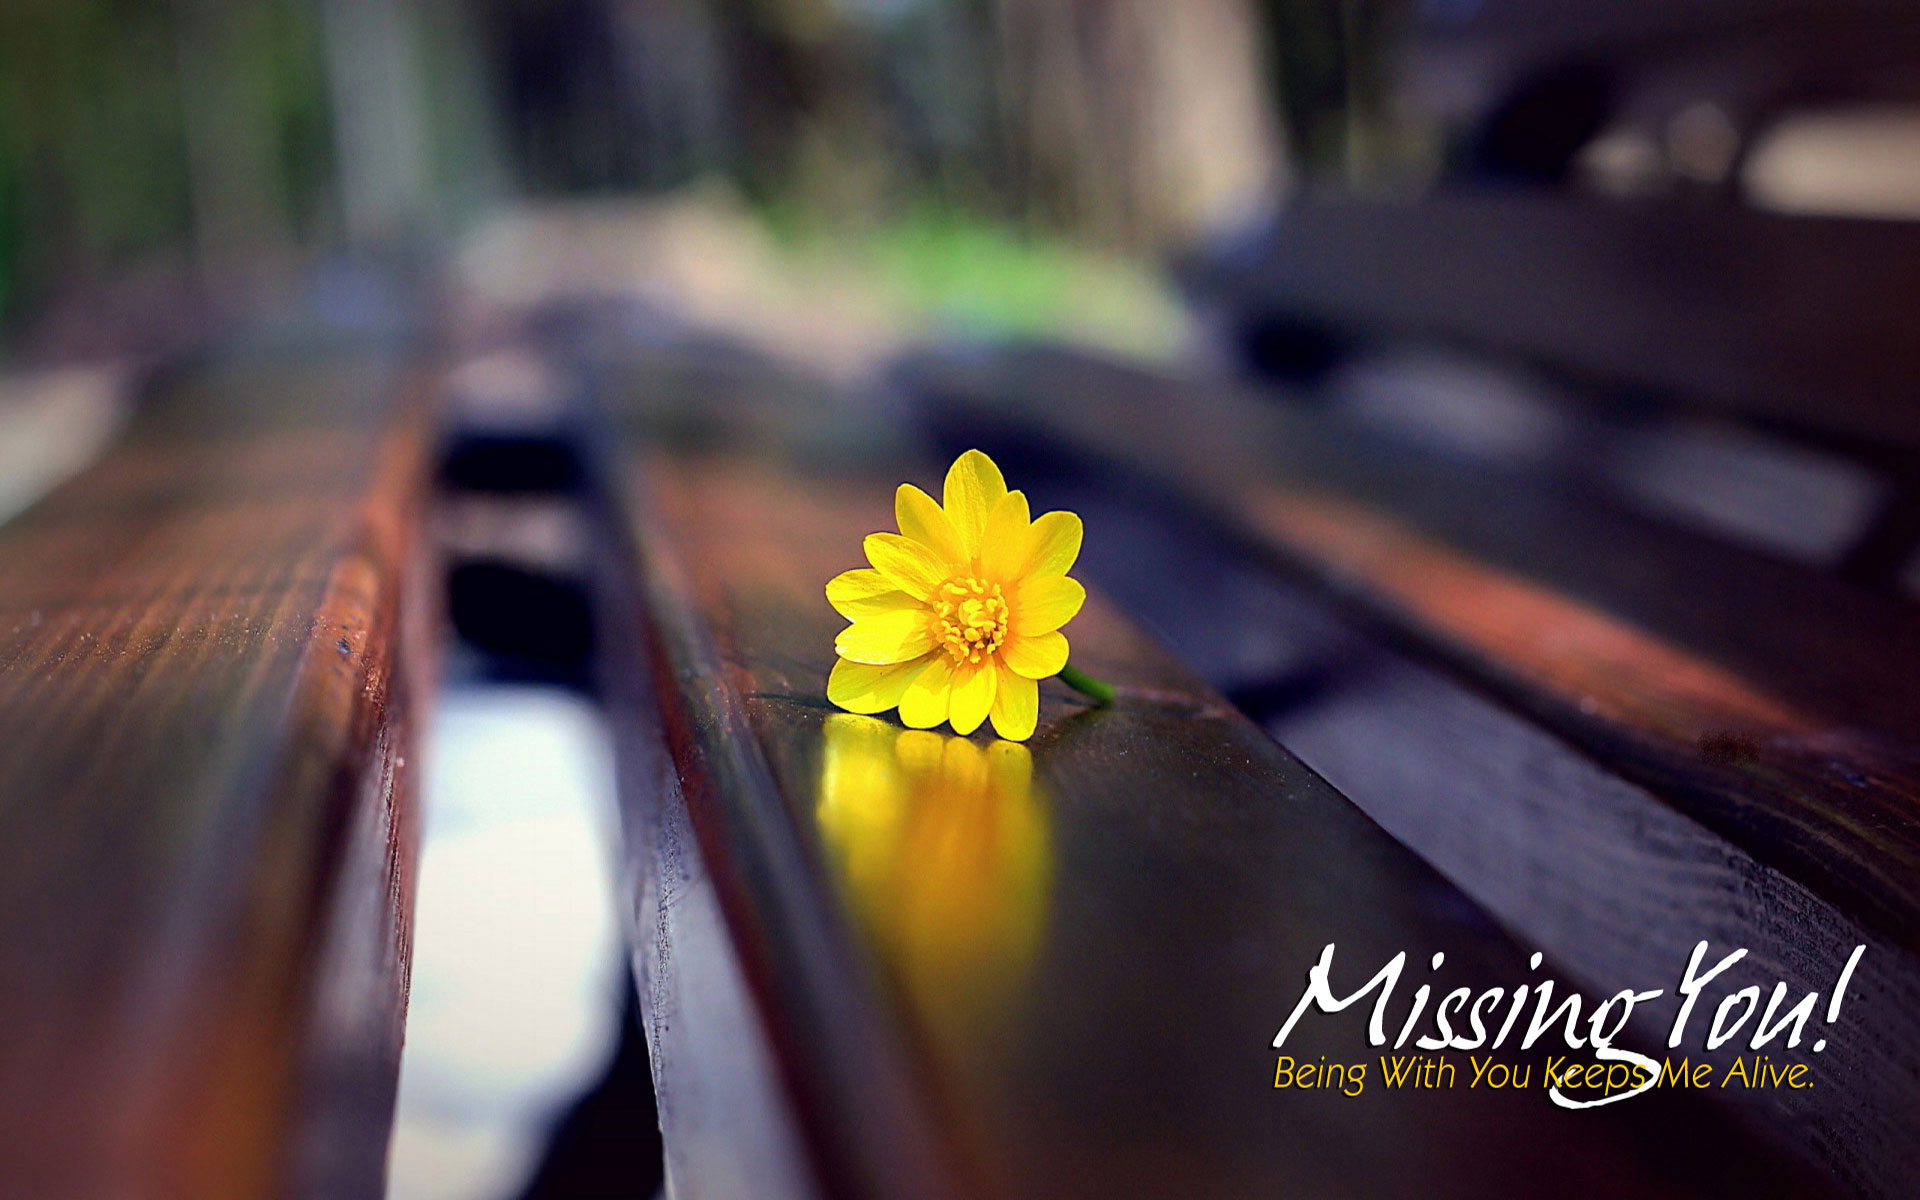 HD I Miss You Wallpaper for him or her|Romantic Wallpapers